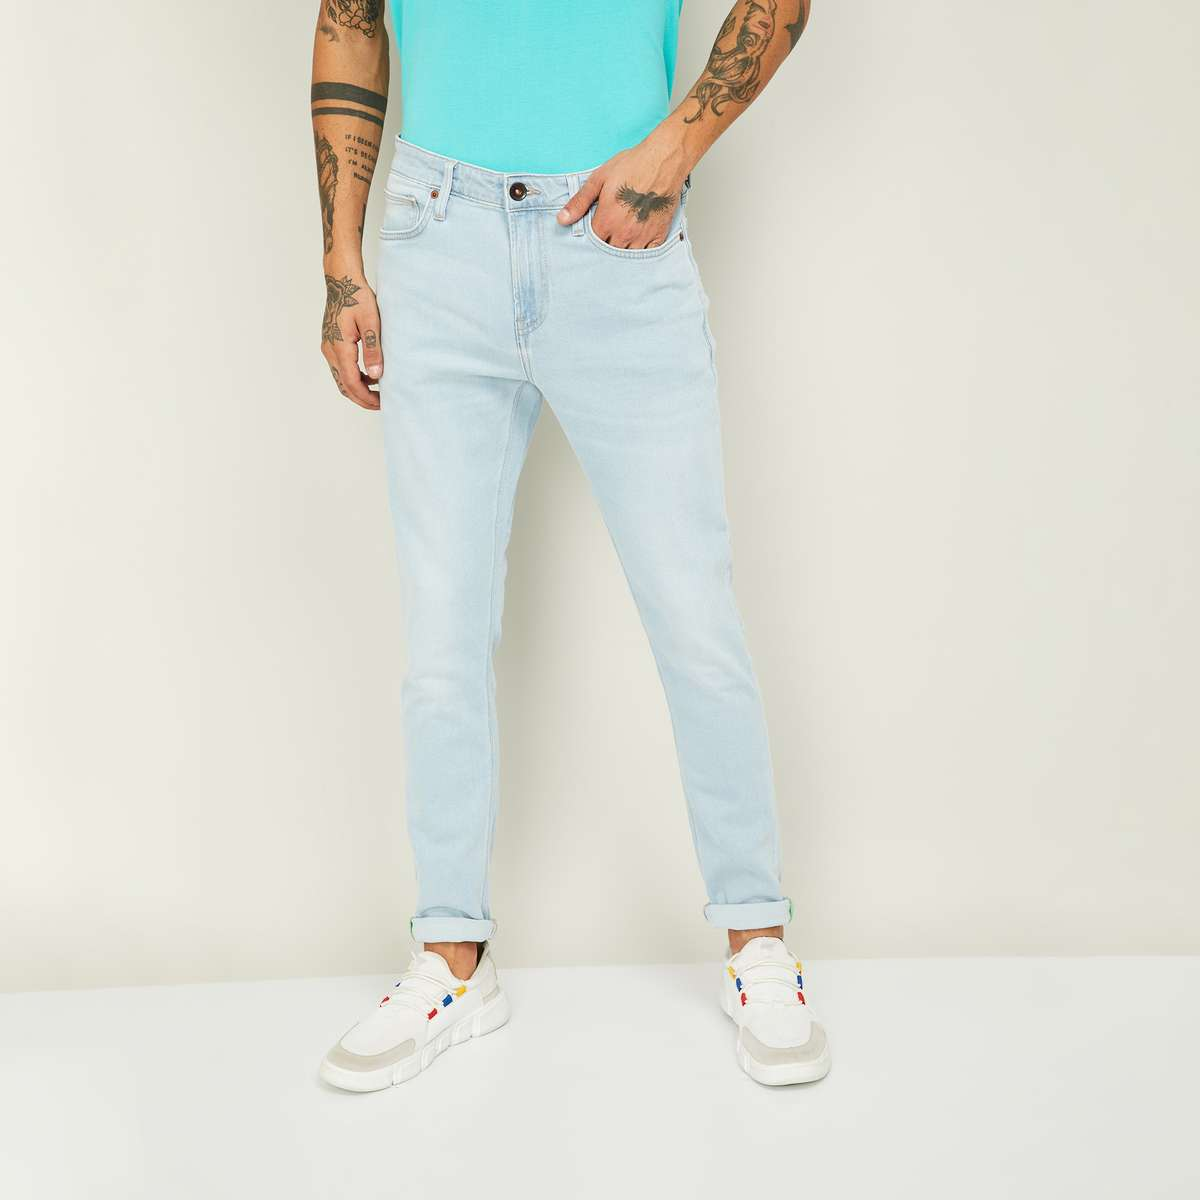 3.UNITED COLORS OF BENETTON Men Stonewashed Skinny Fit Jeans